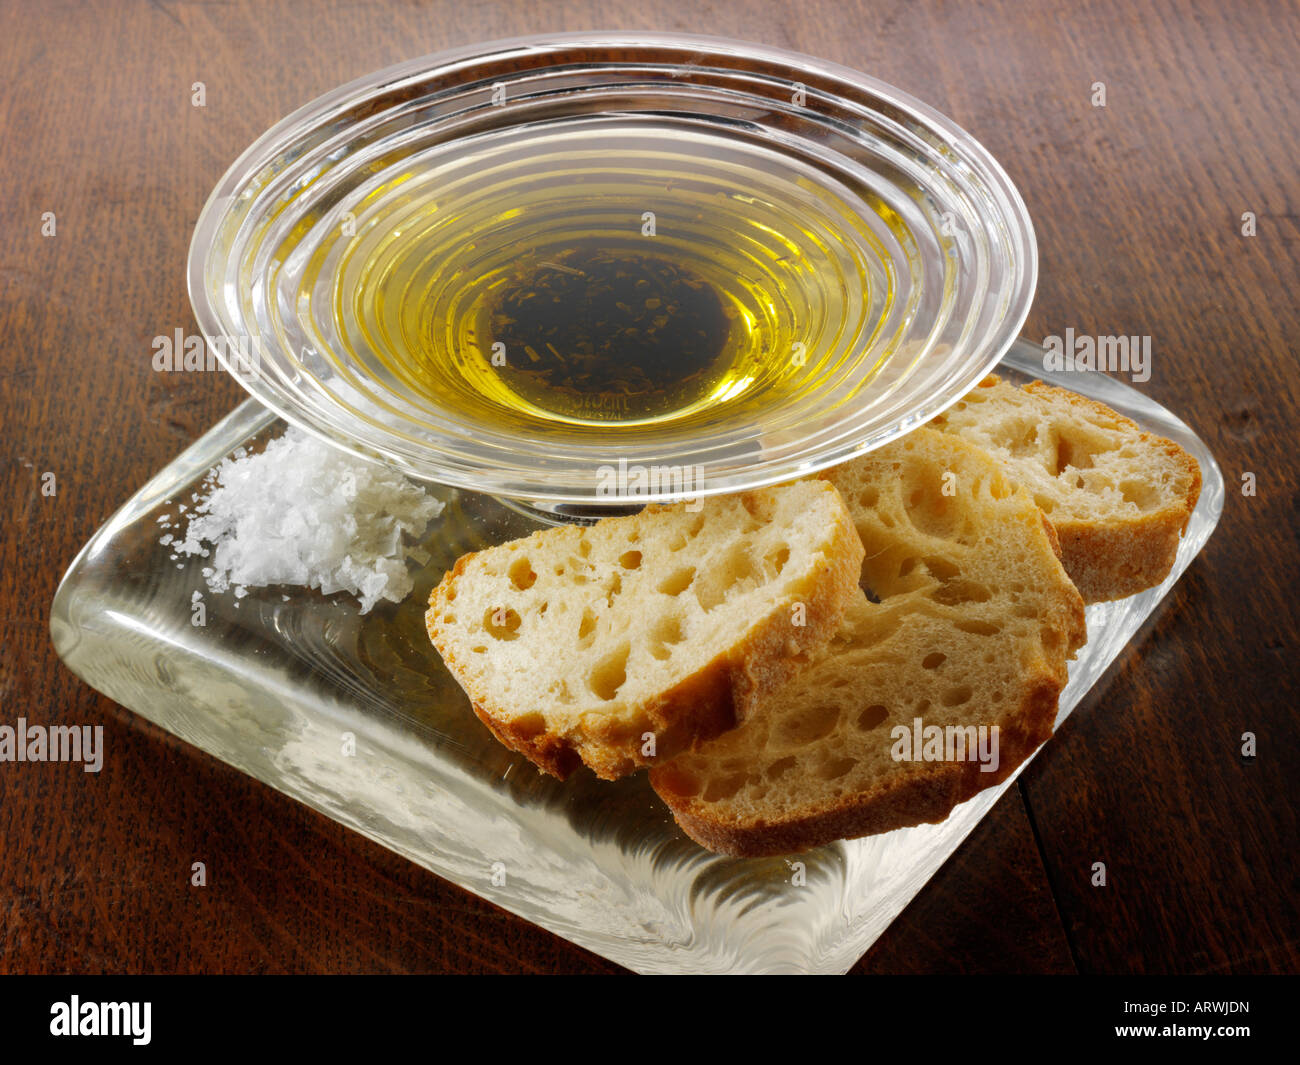 Bread and olive oil dipping sauce - Stock Image